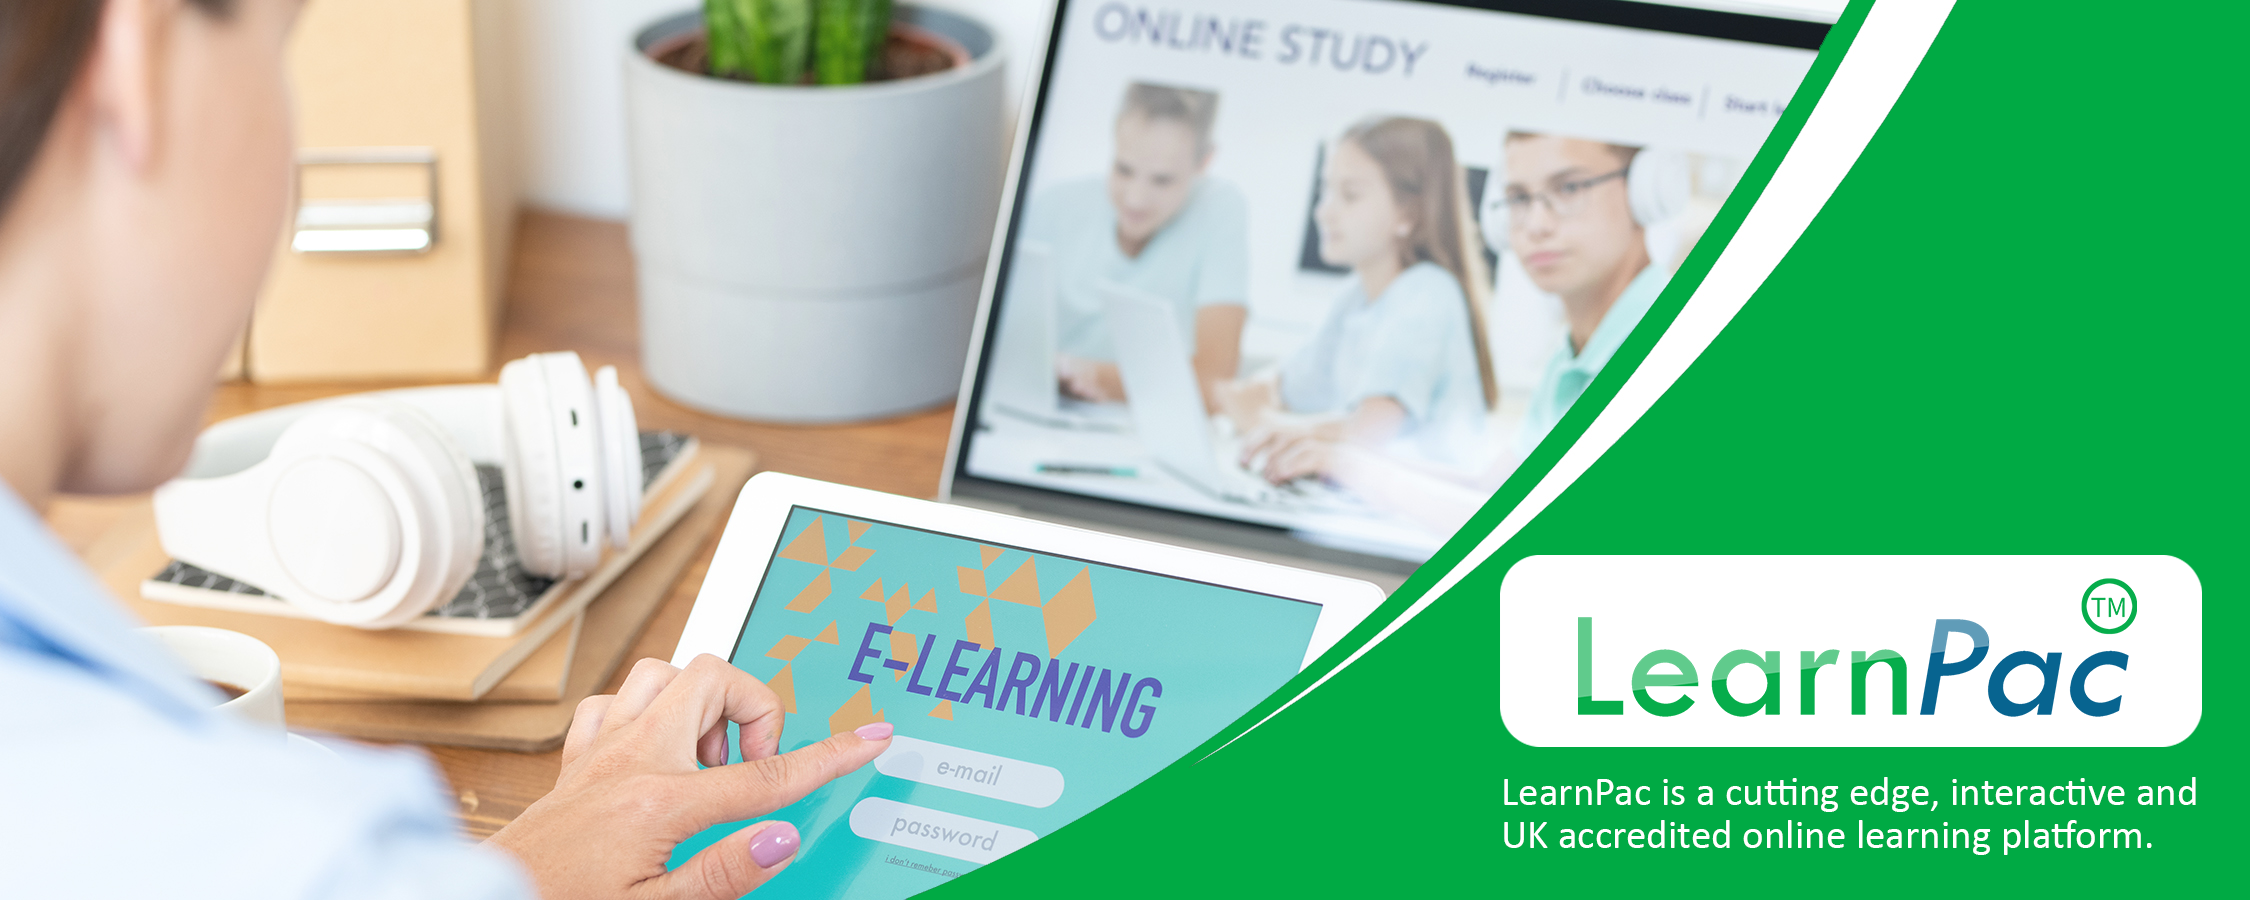 Care Certificate Standard 5 - E-Learning Courses - LearnPac Systems UK -